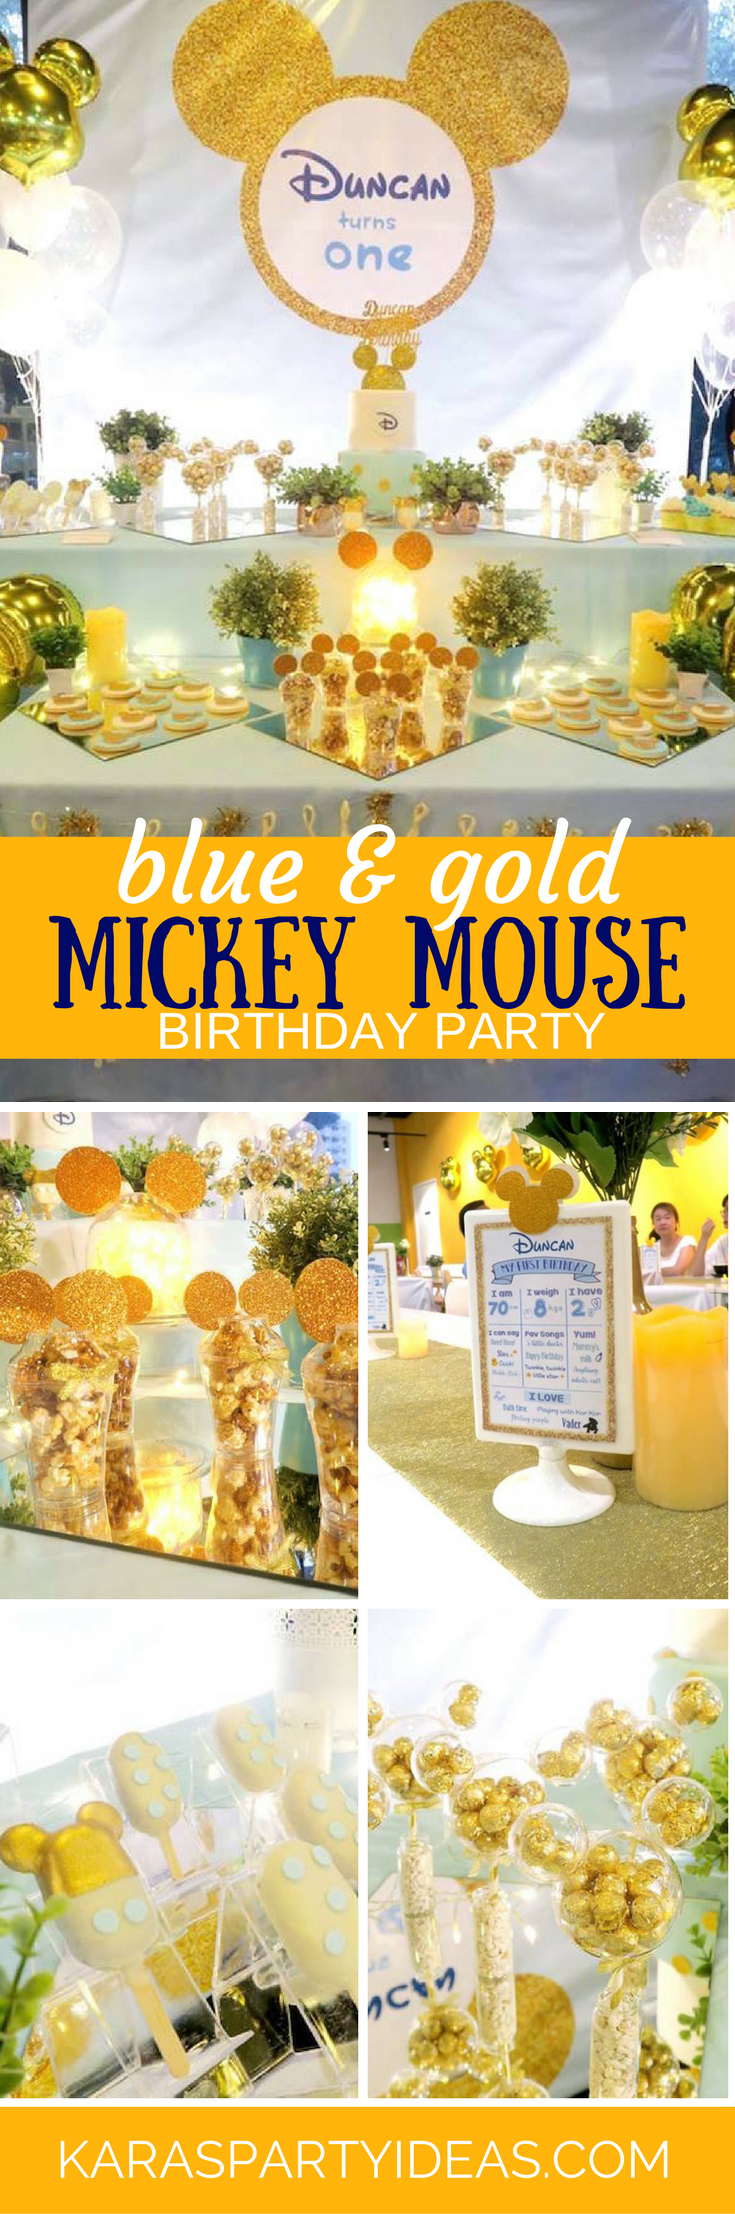 Blue and Gold Mickey Mouse Birthday Party via Kara's Party Ideas - KarasPartyIdeas.com